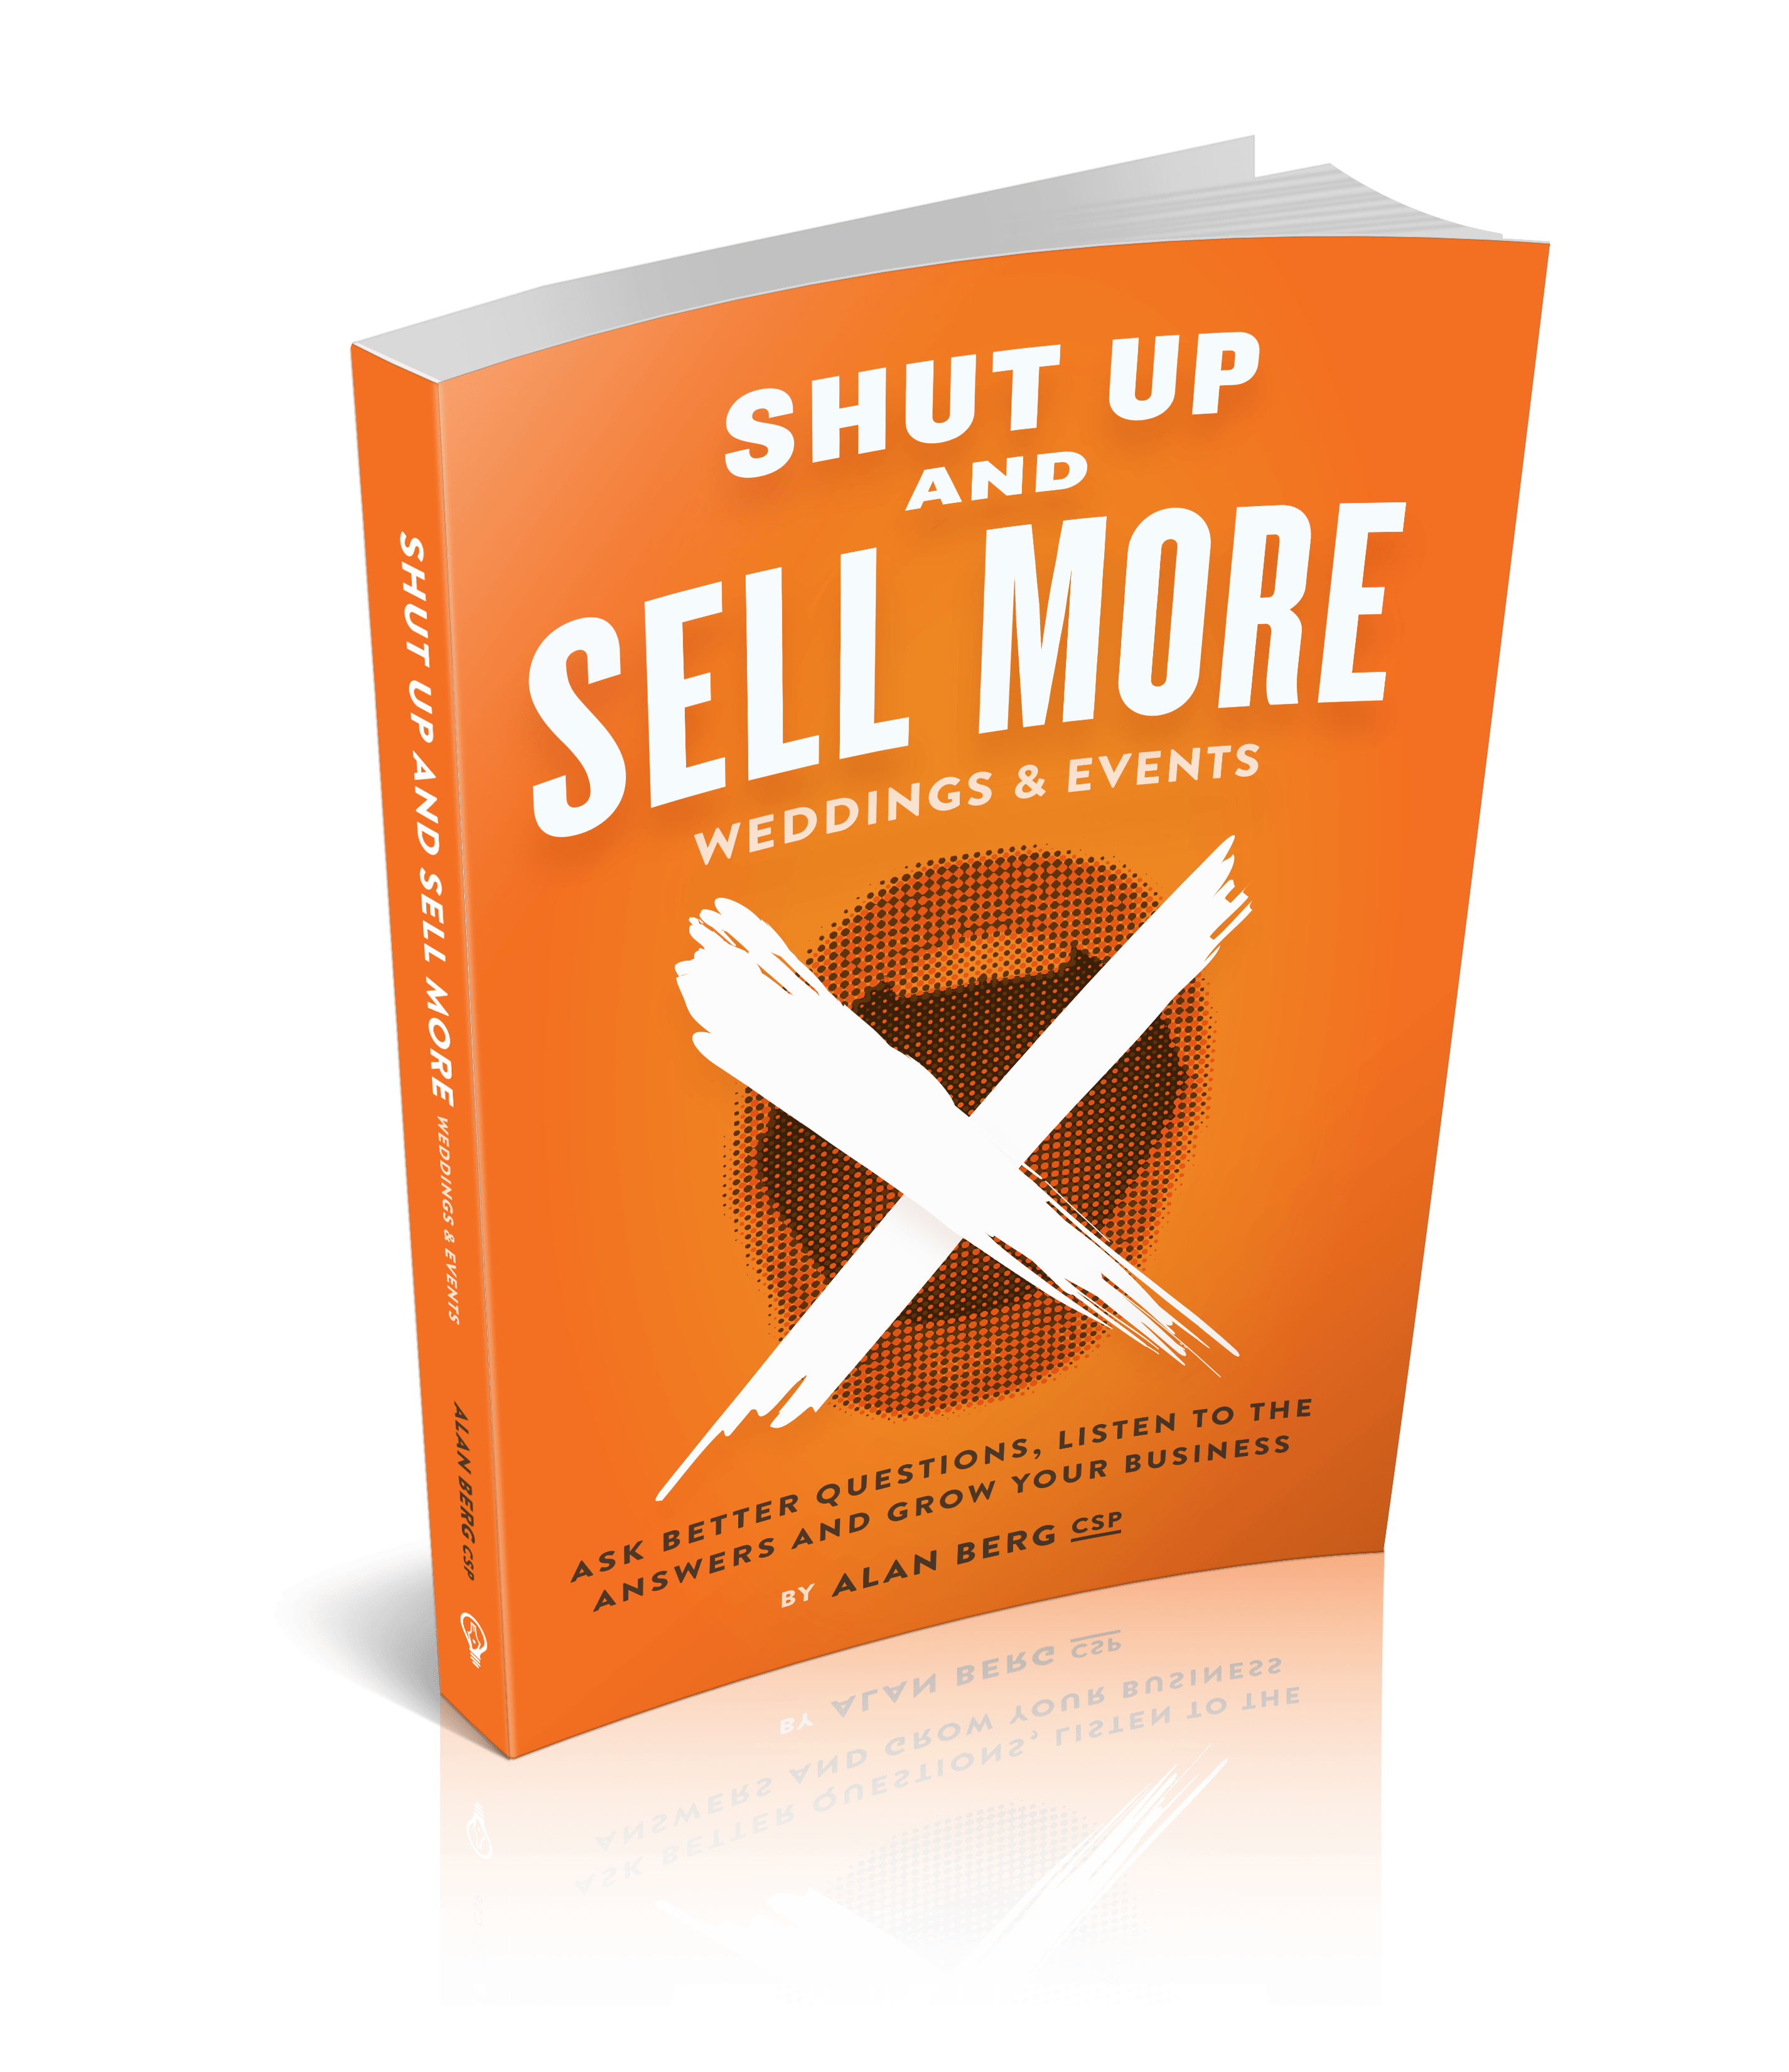 Shut Up and Sell More Weddings and Events - Alan Berg CSP